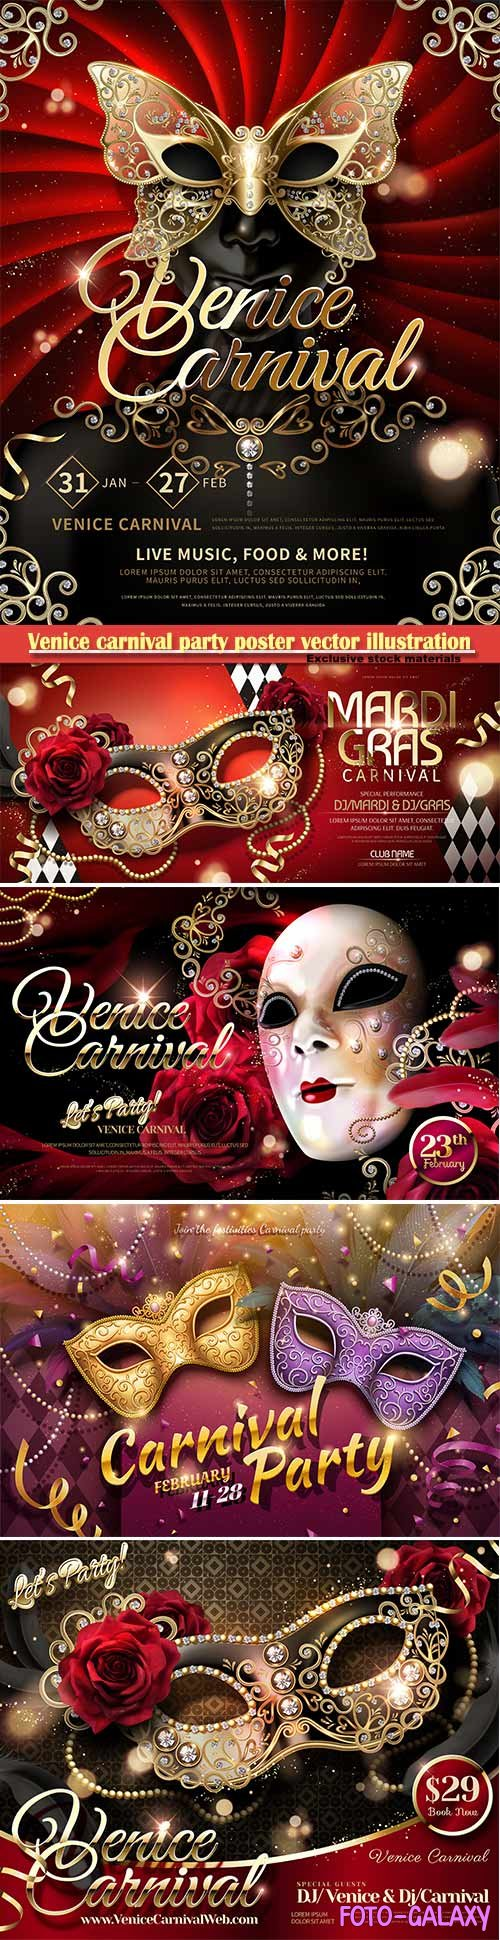 Venice carnival design vector illustration